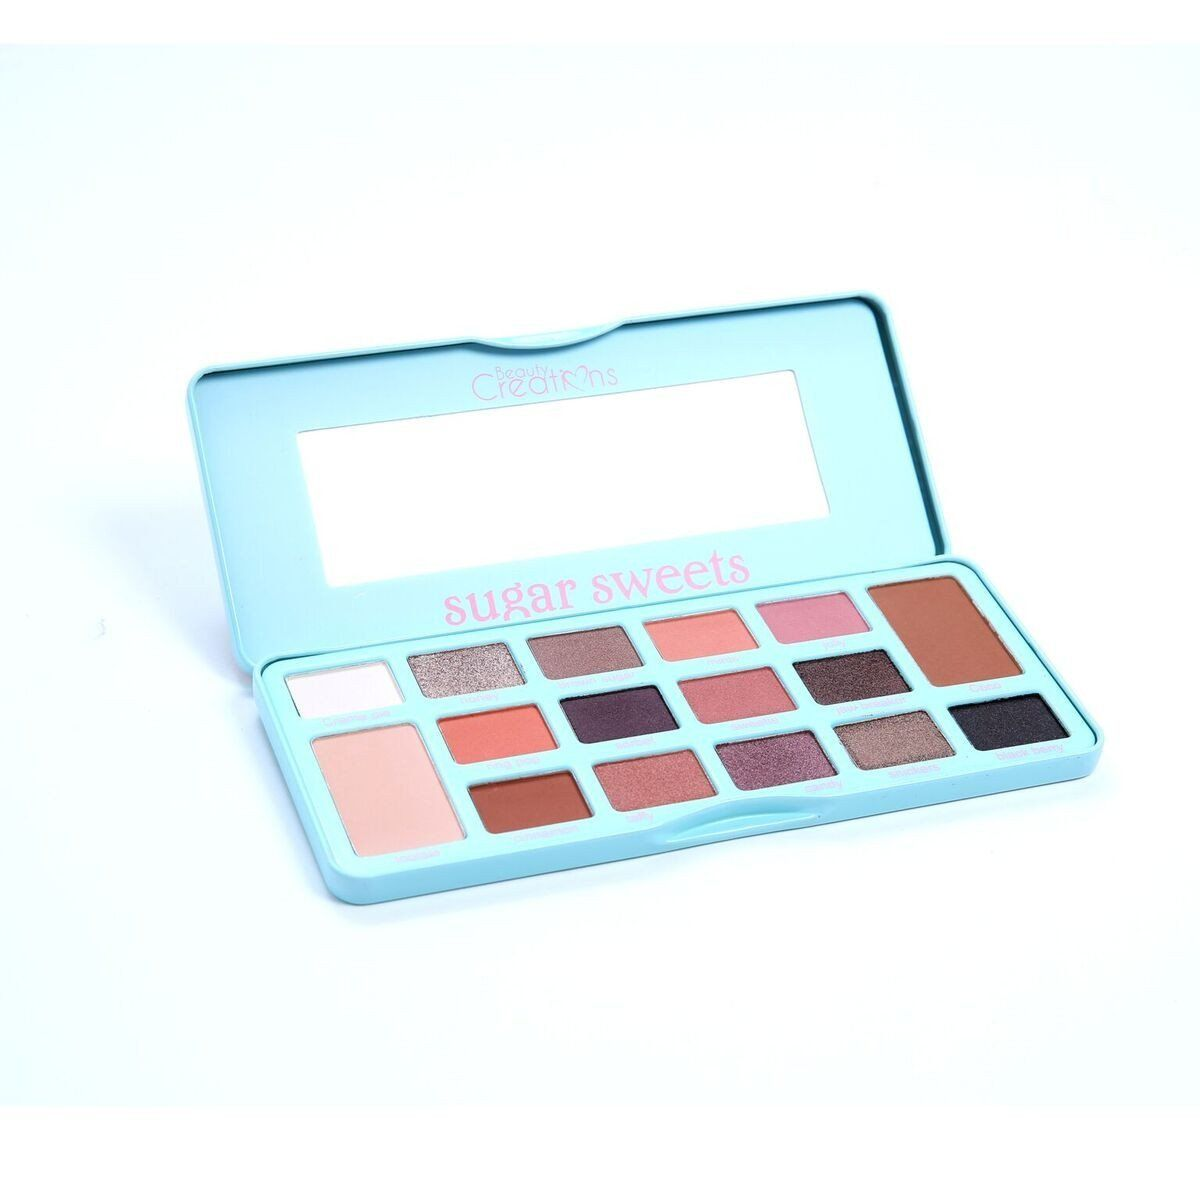 Sugar Sweets Eye Shadow Palette